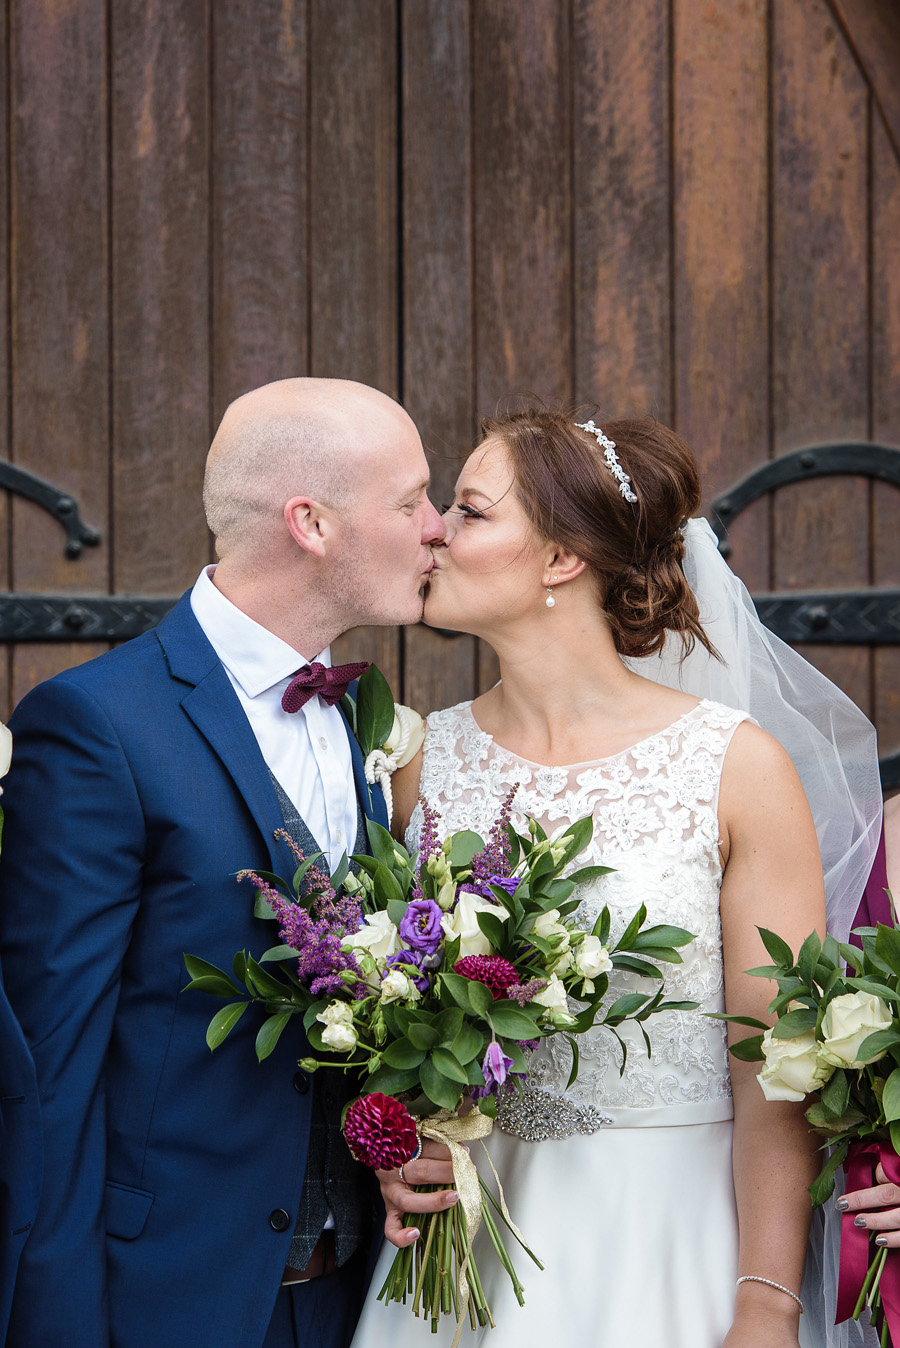 Stunning real wedding at Salomons Estate, images by Penny Young Photography (15)